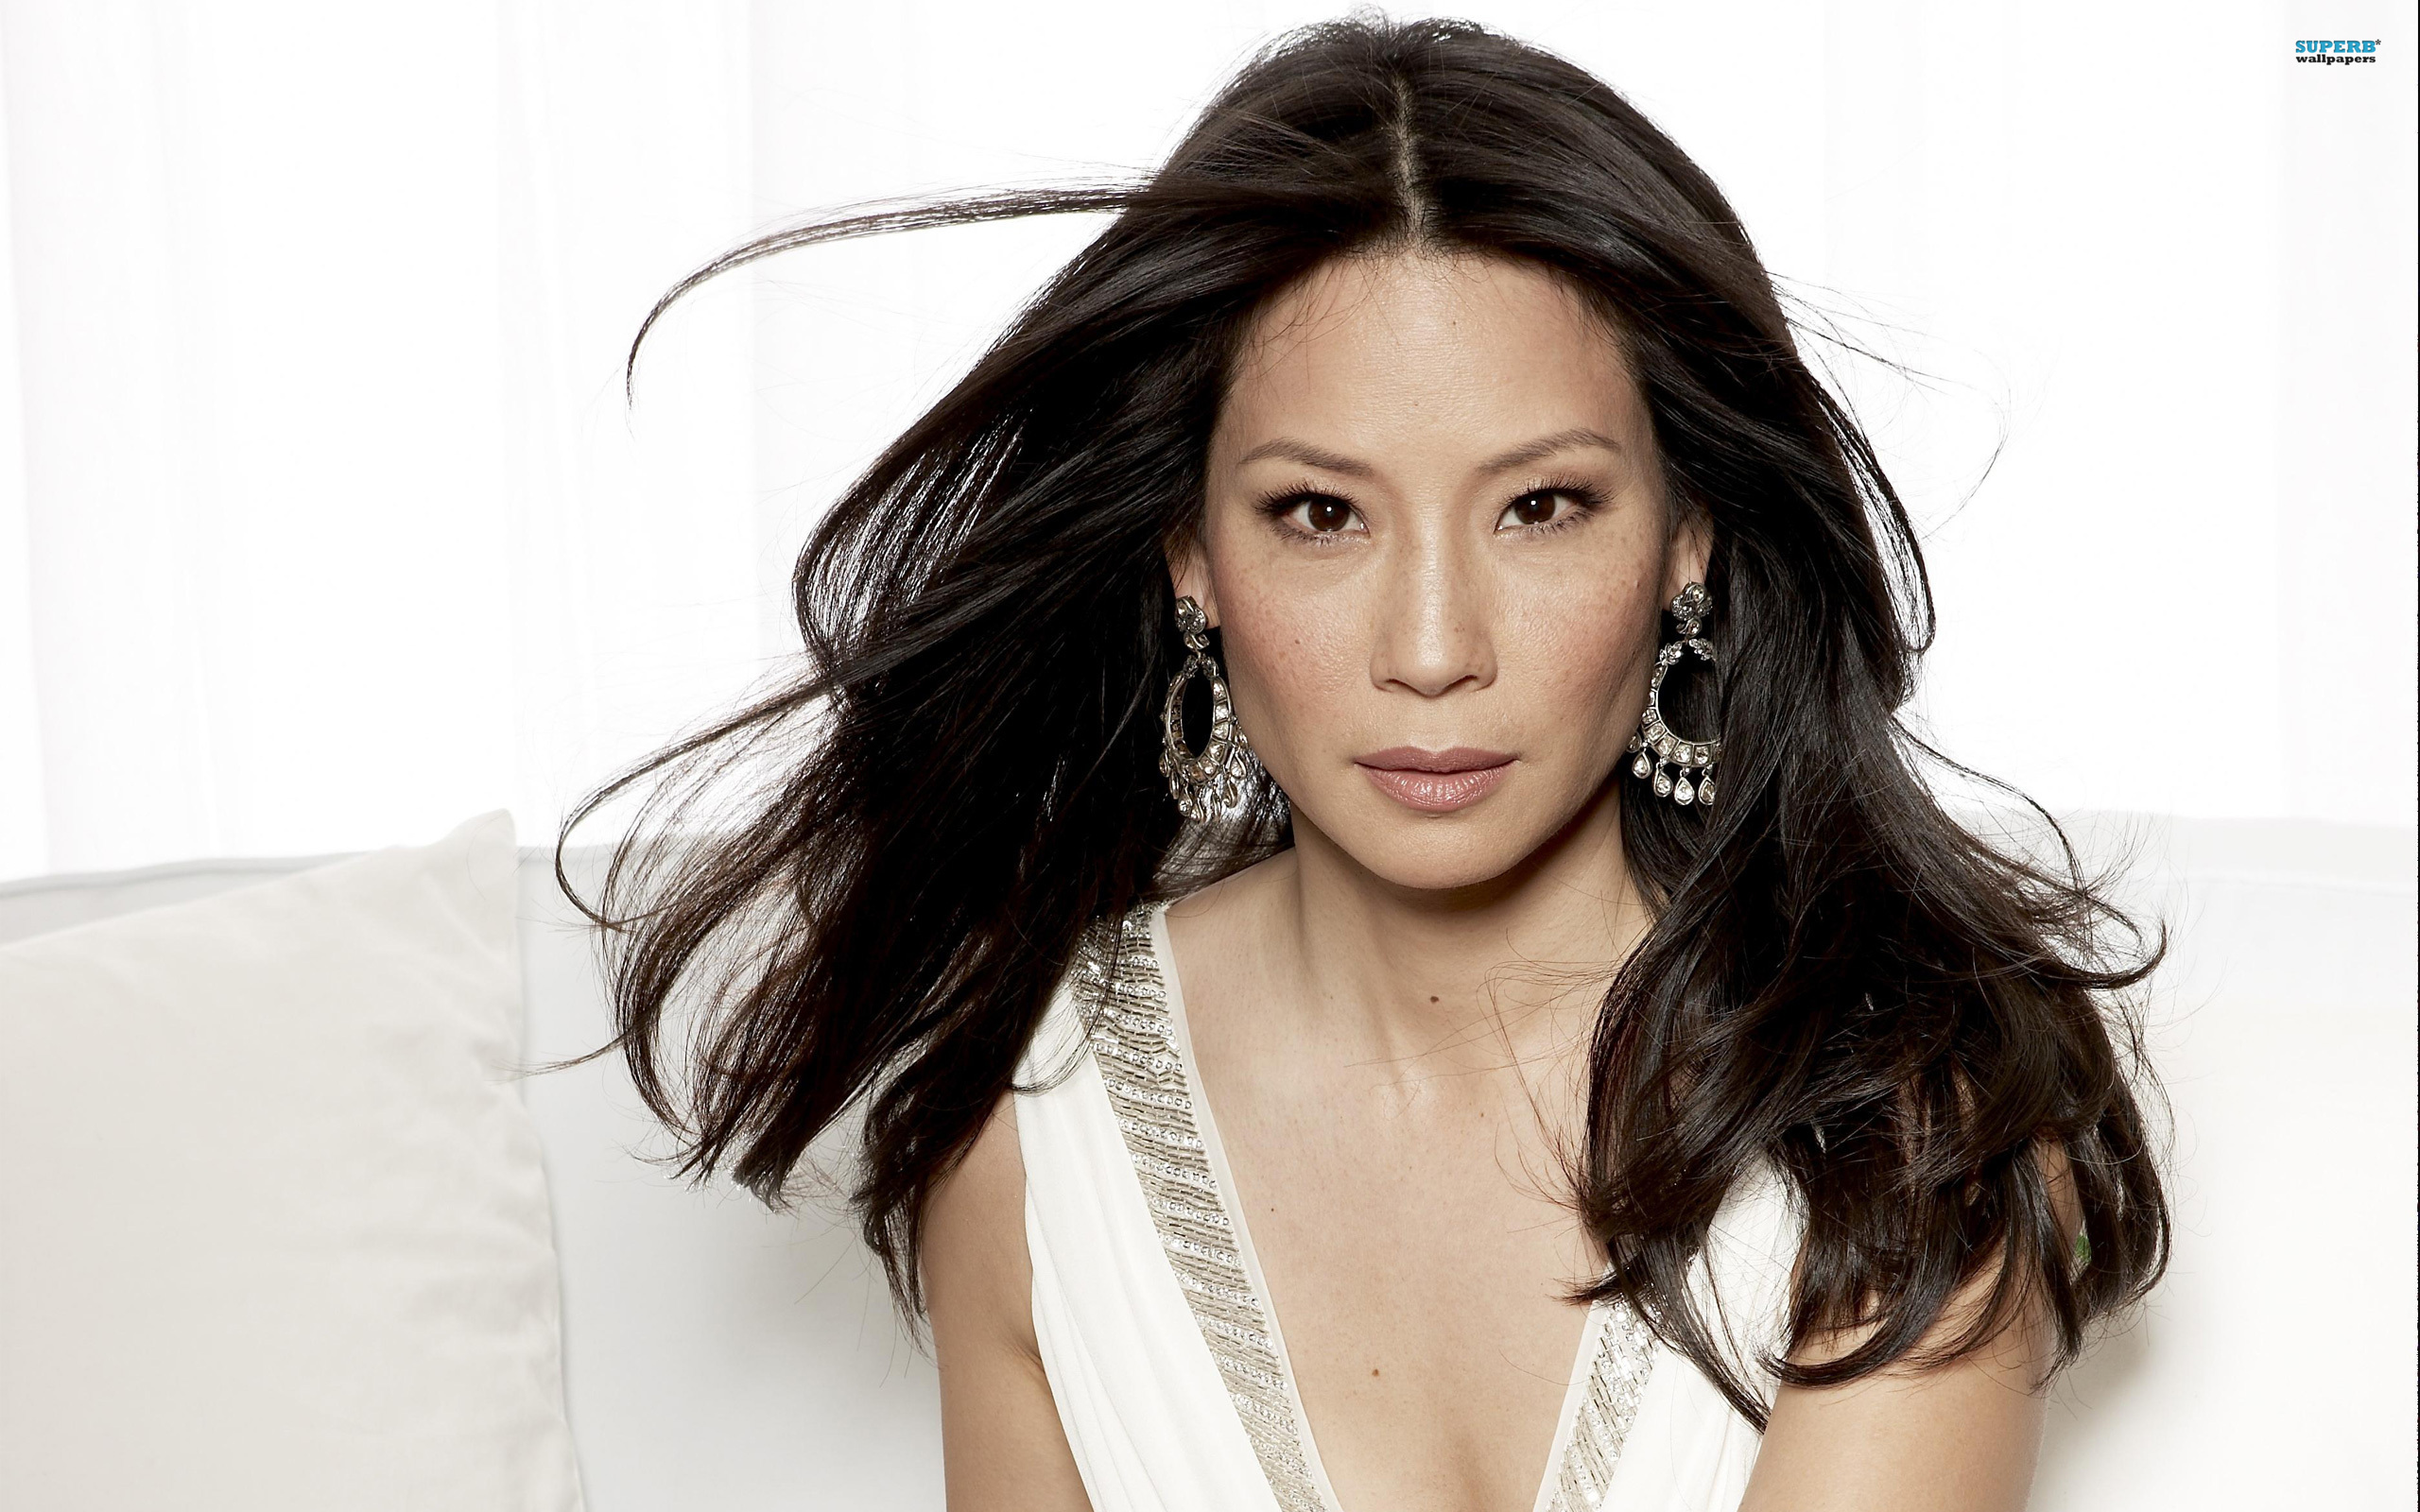 Lucy Liu #209764 | Full HD Widescreen wallpapers for desktop download